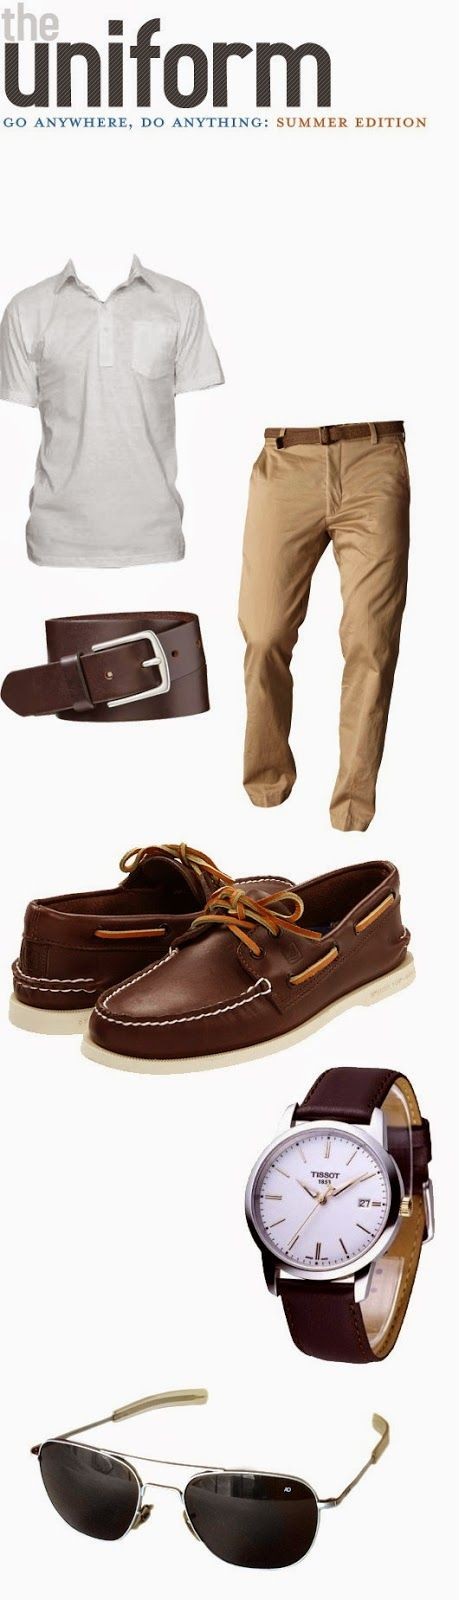 classy men's fashion | Classy yet casual | Men's Outfit | ASOS Fashion Finder You might be dressed to impressed but now it is time to hire the best. We will help you recruit great talent talk to us at carlos@recruitingforgood.com